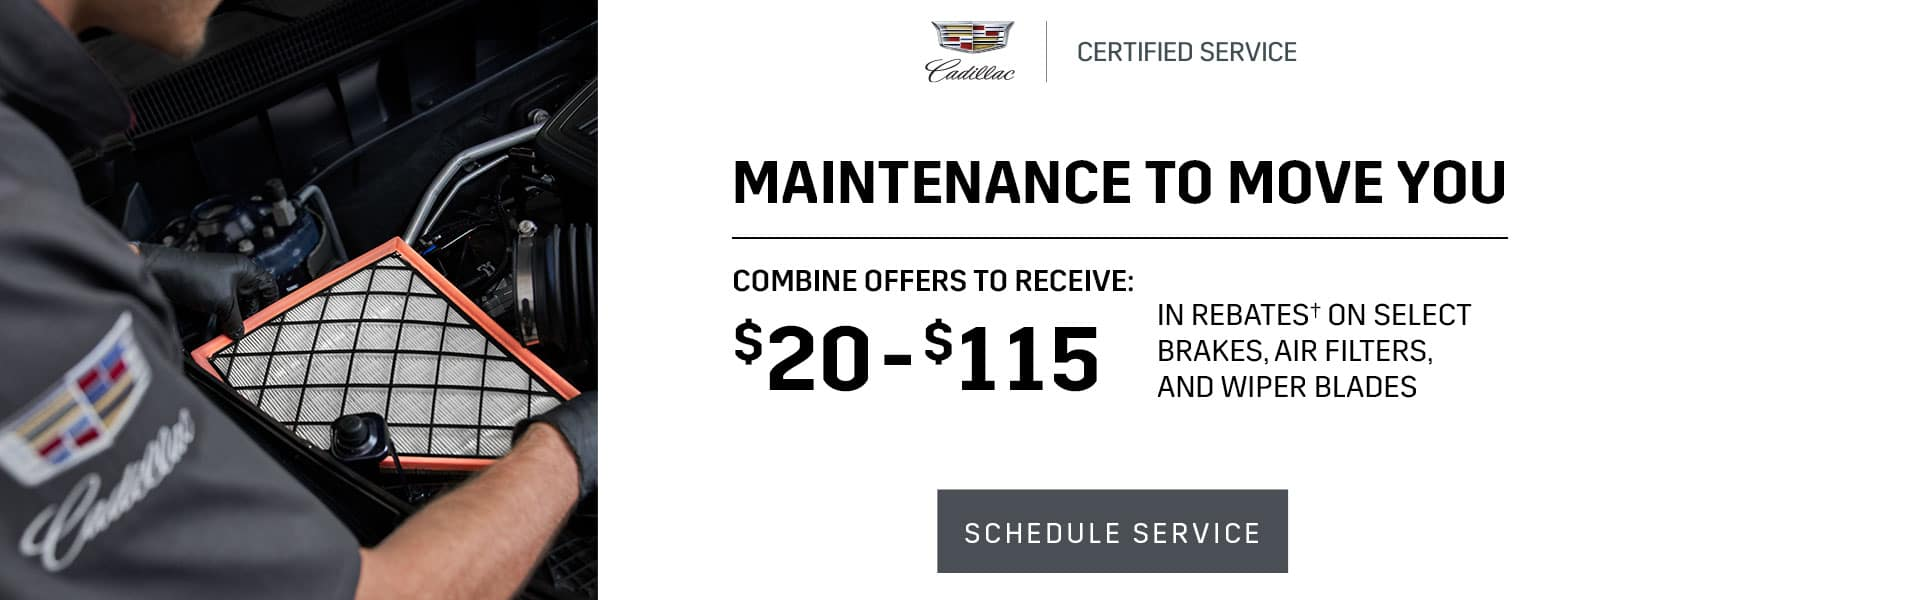 Maintenance to Move You